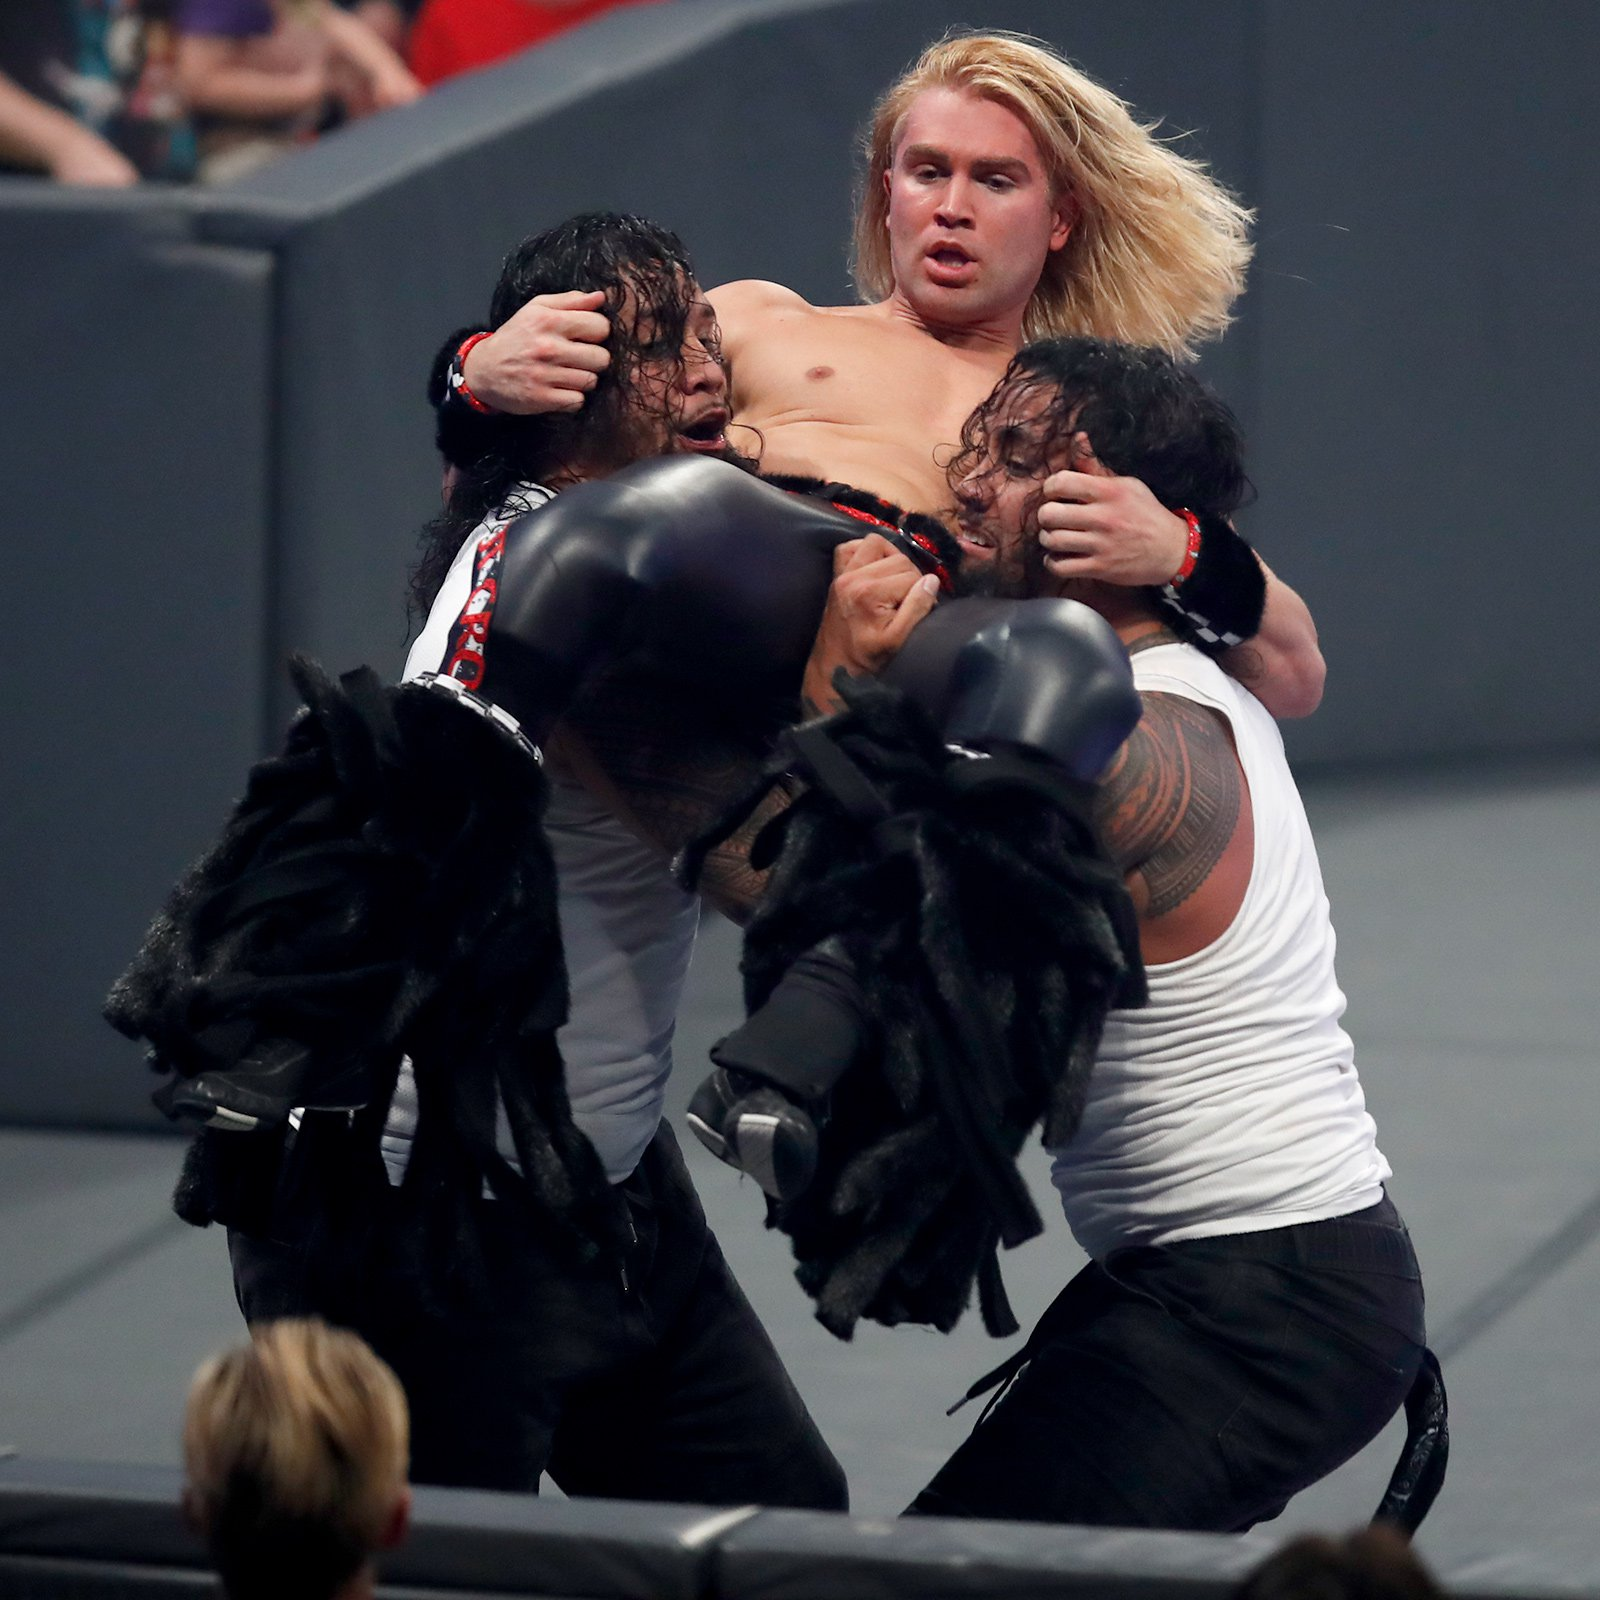 Jimmy & Jey Uso work together to take Prince Pretty out of the equation.